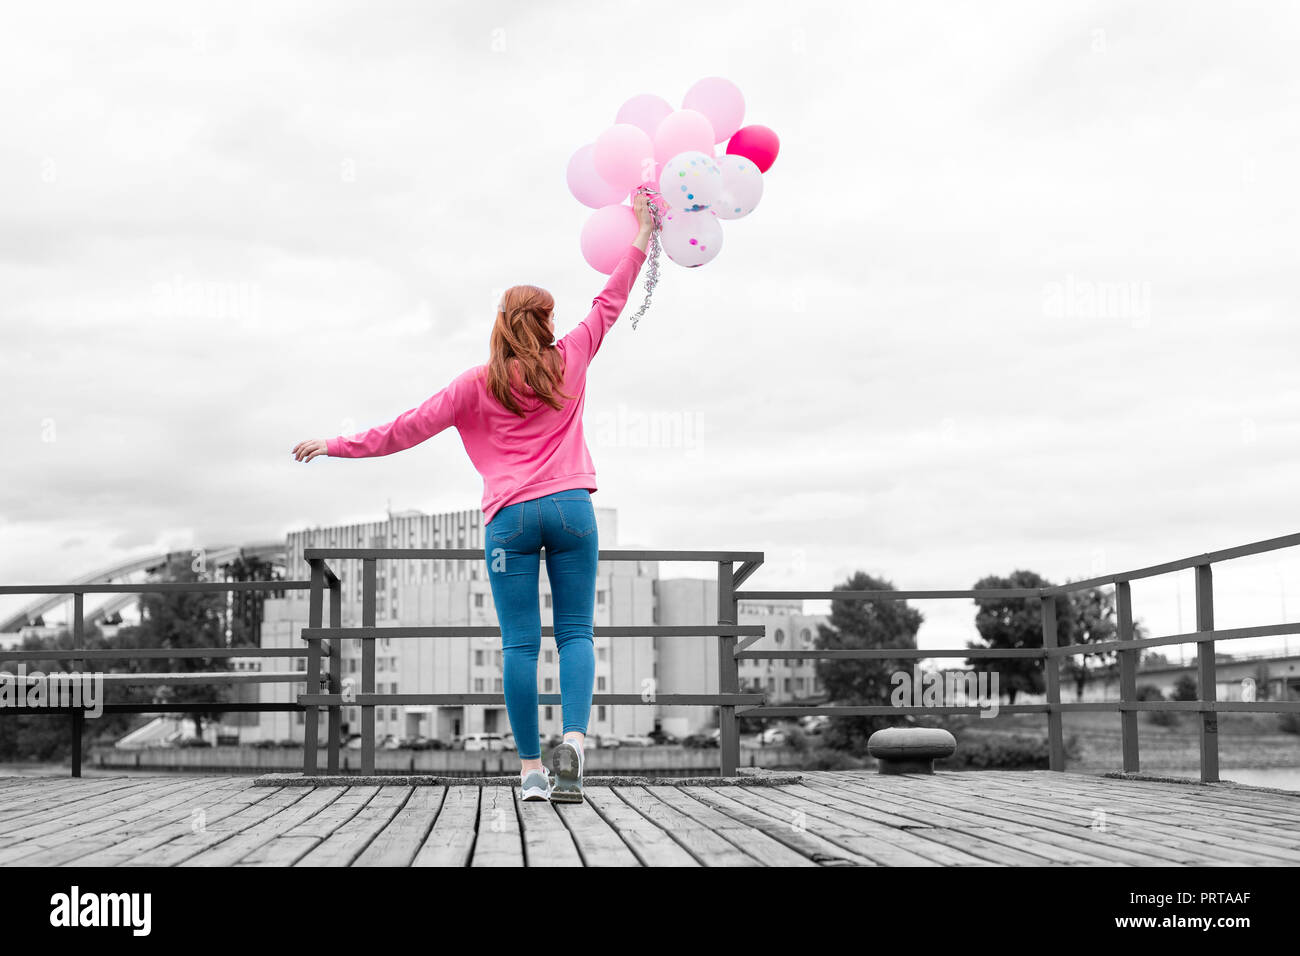 Relaxed young girl putting pink balloons up while standing on the pier - Stock Image